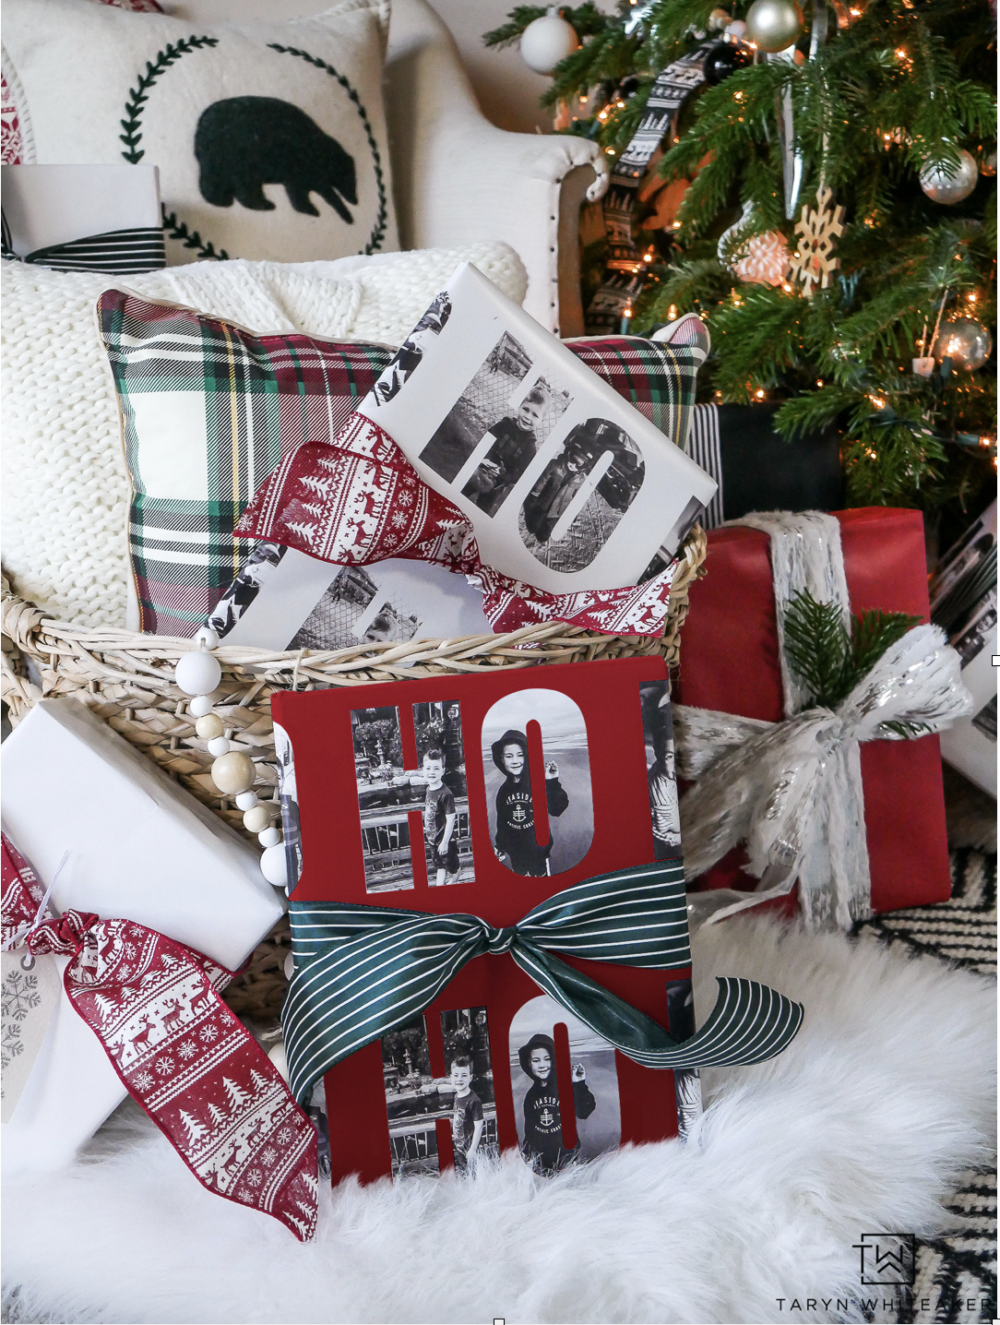 Love this idea of turning personal photos into custom wrapping paper for the holidays! Look closely and see the family photos inside the 'HO HO HO'!